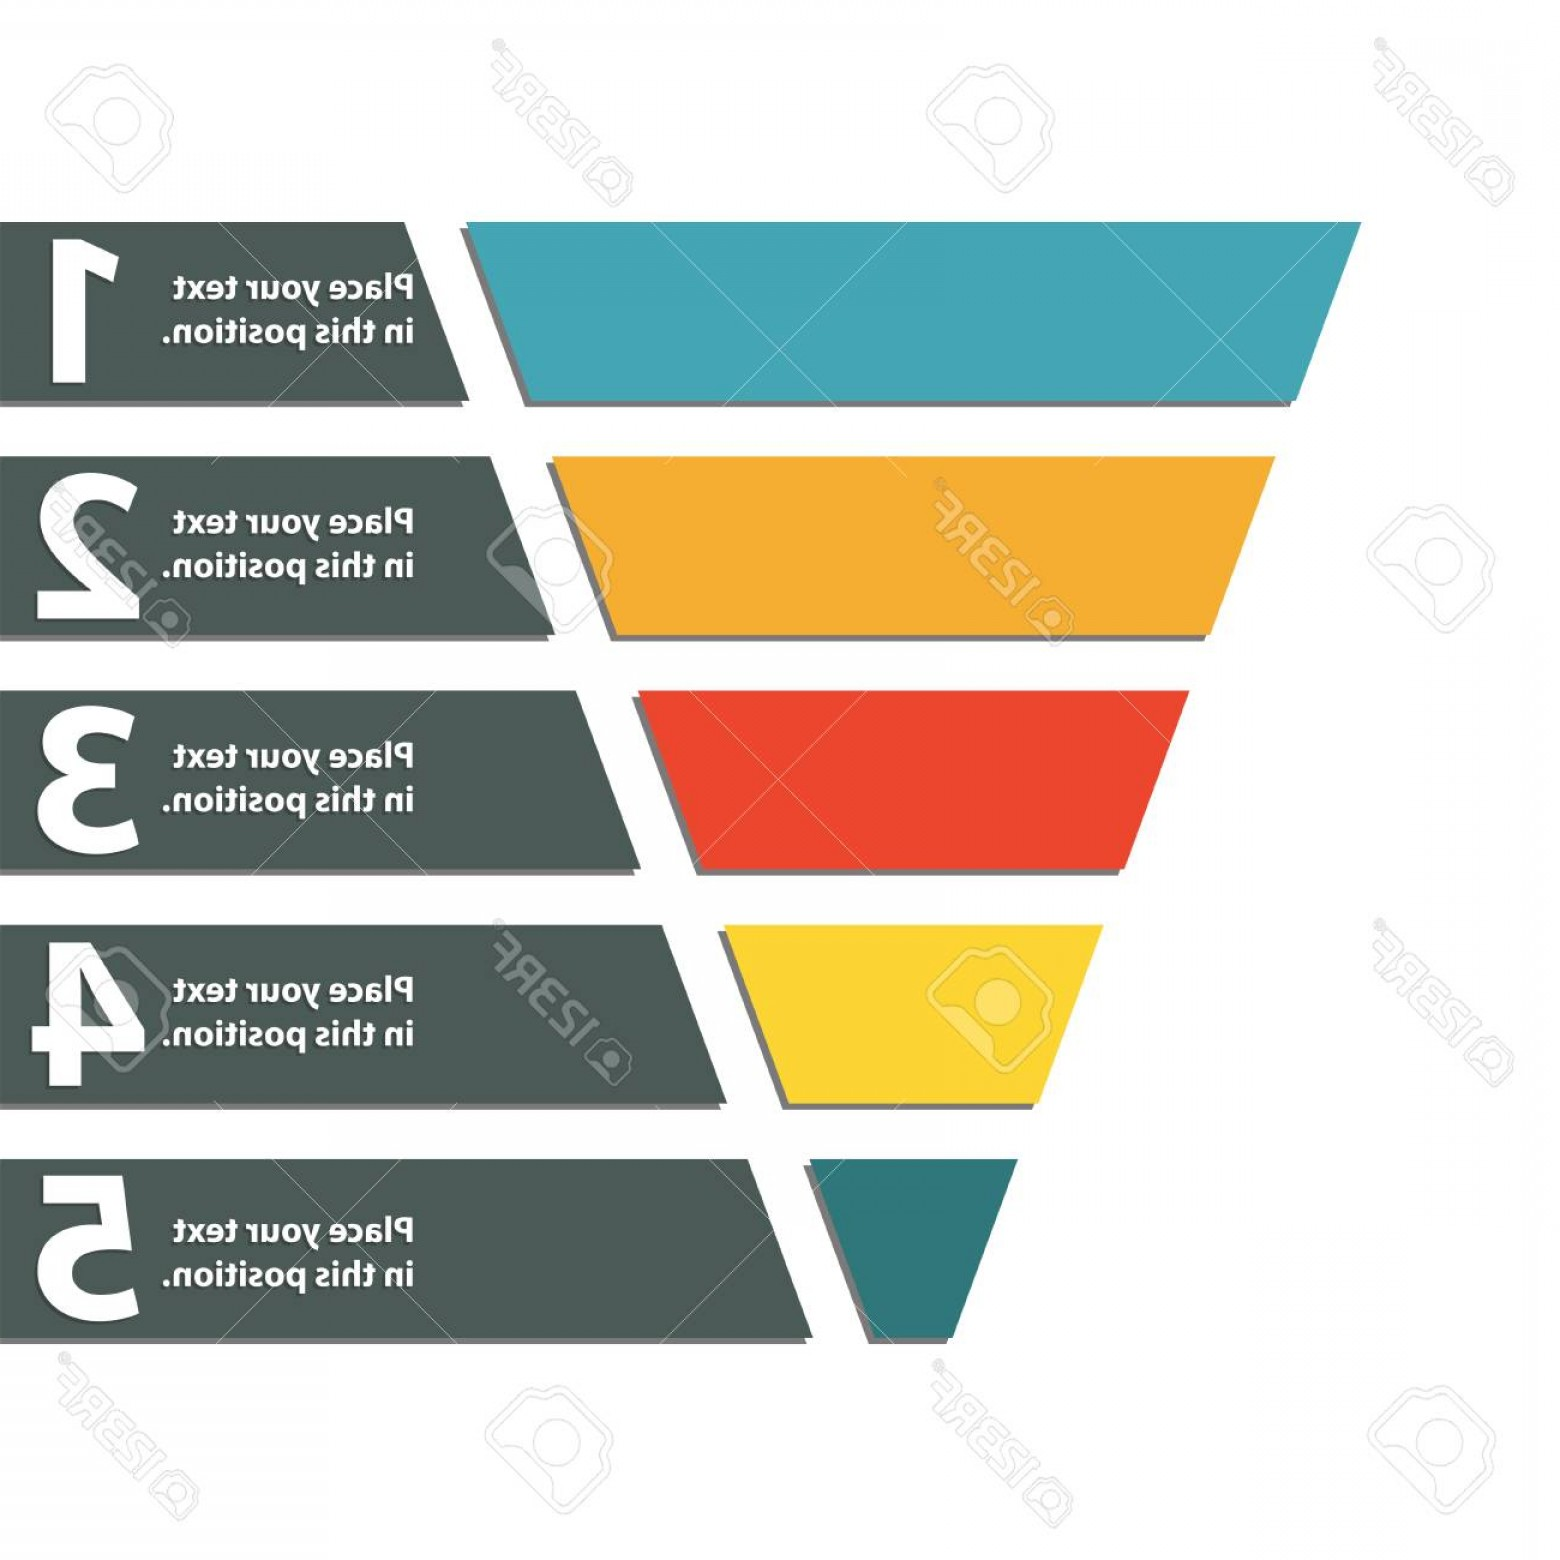 Vector Funnel Infographic: Photostock Vector Funnel Symbol Infographic Or Web Design Element Template For Marketing Conversion Or Sales Colorful